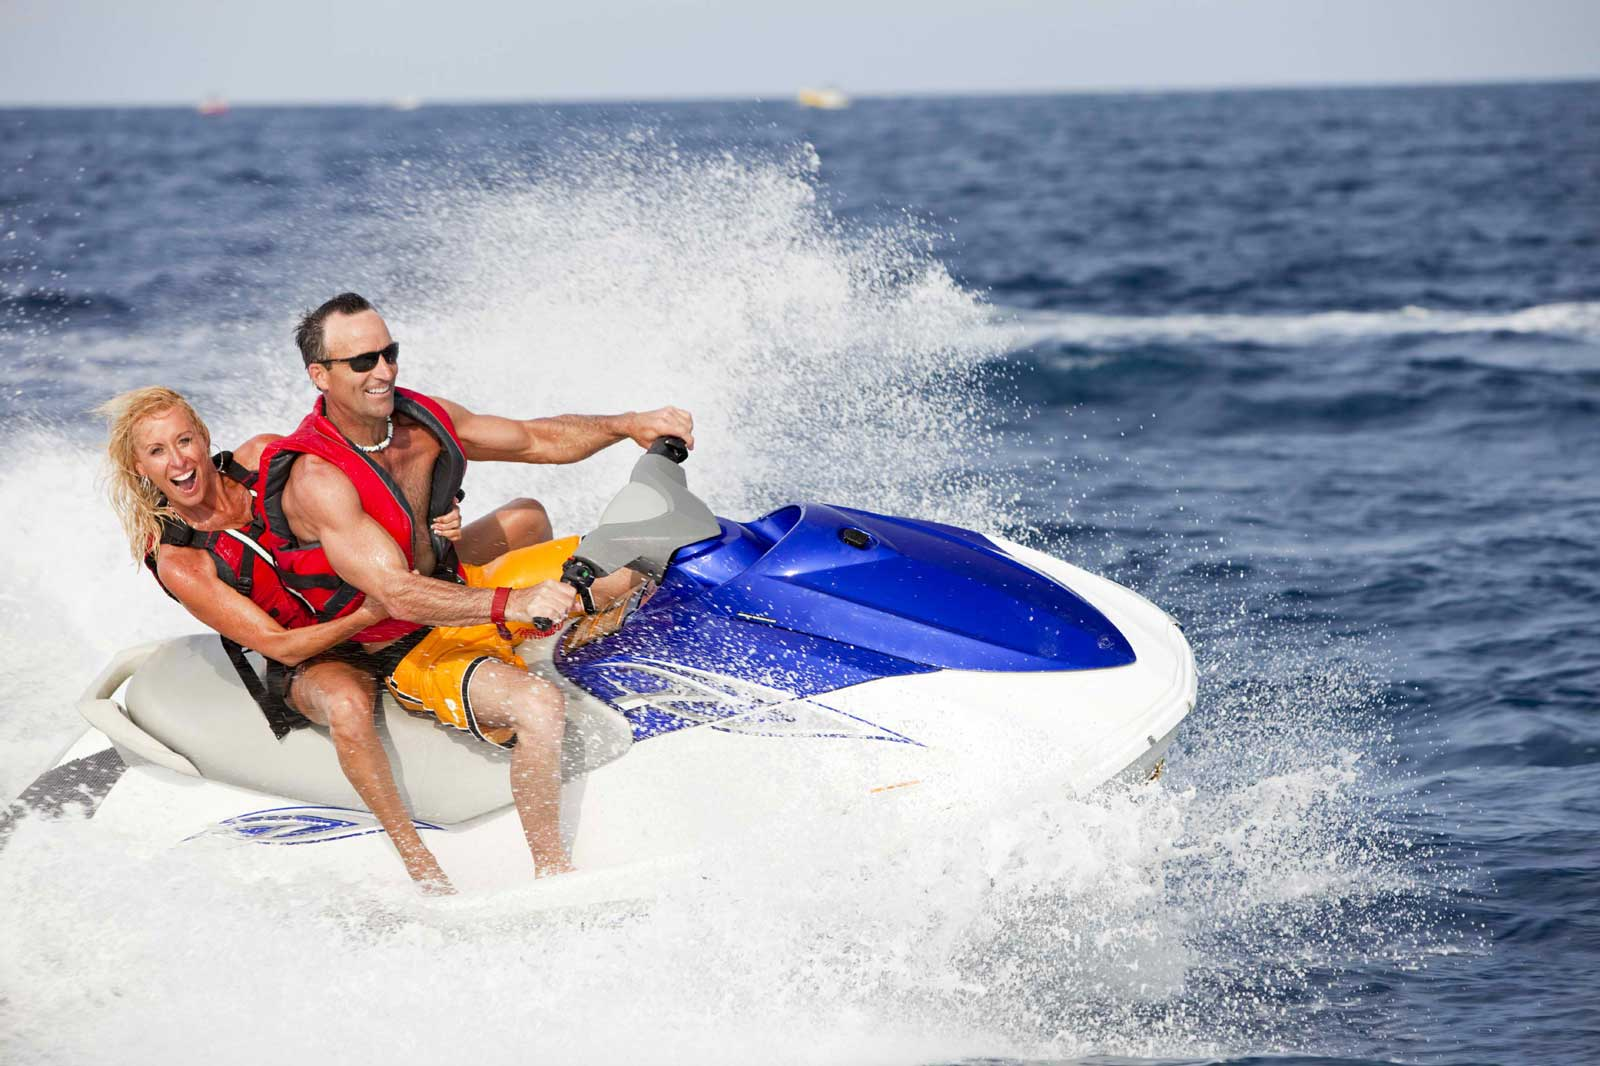 Renting Jet Skis In Miami South Beach